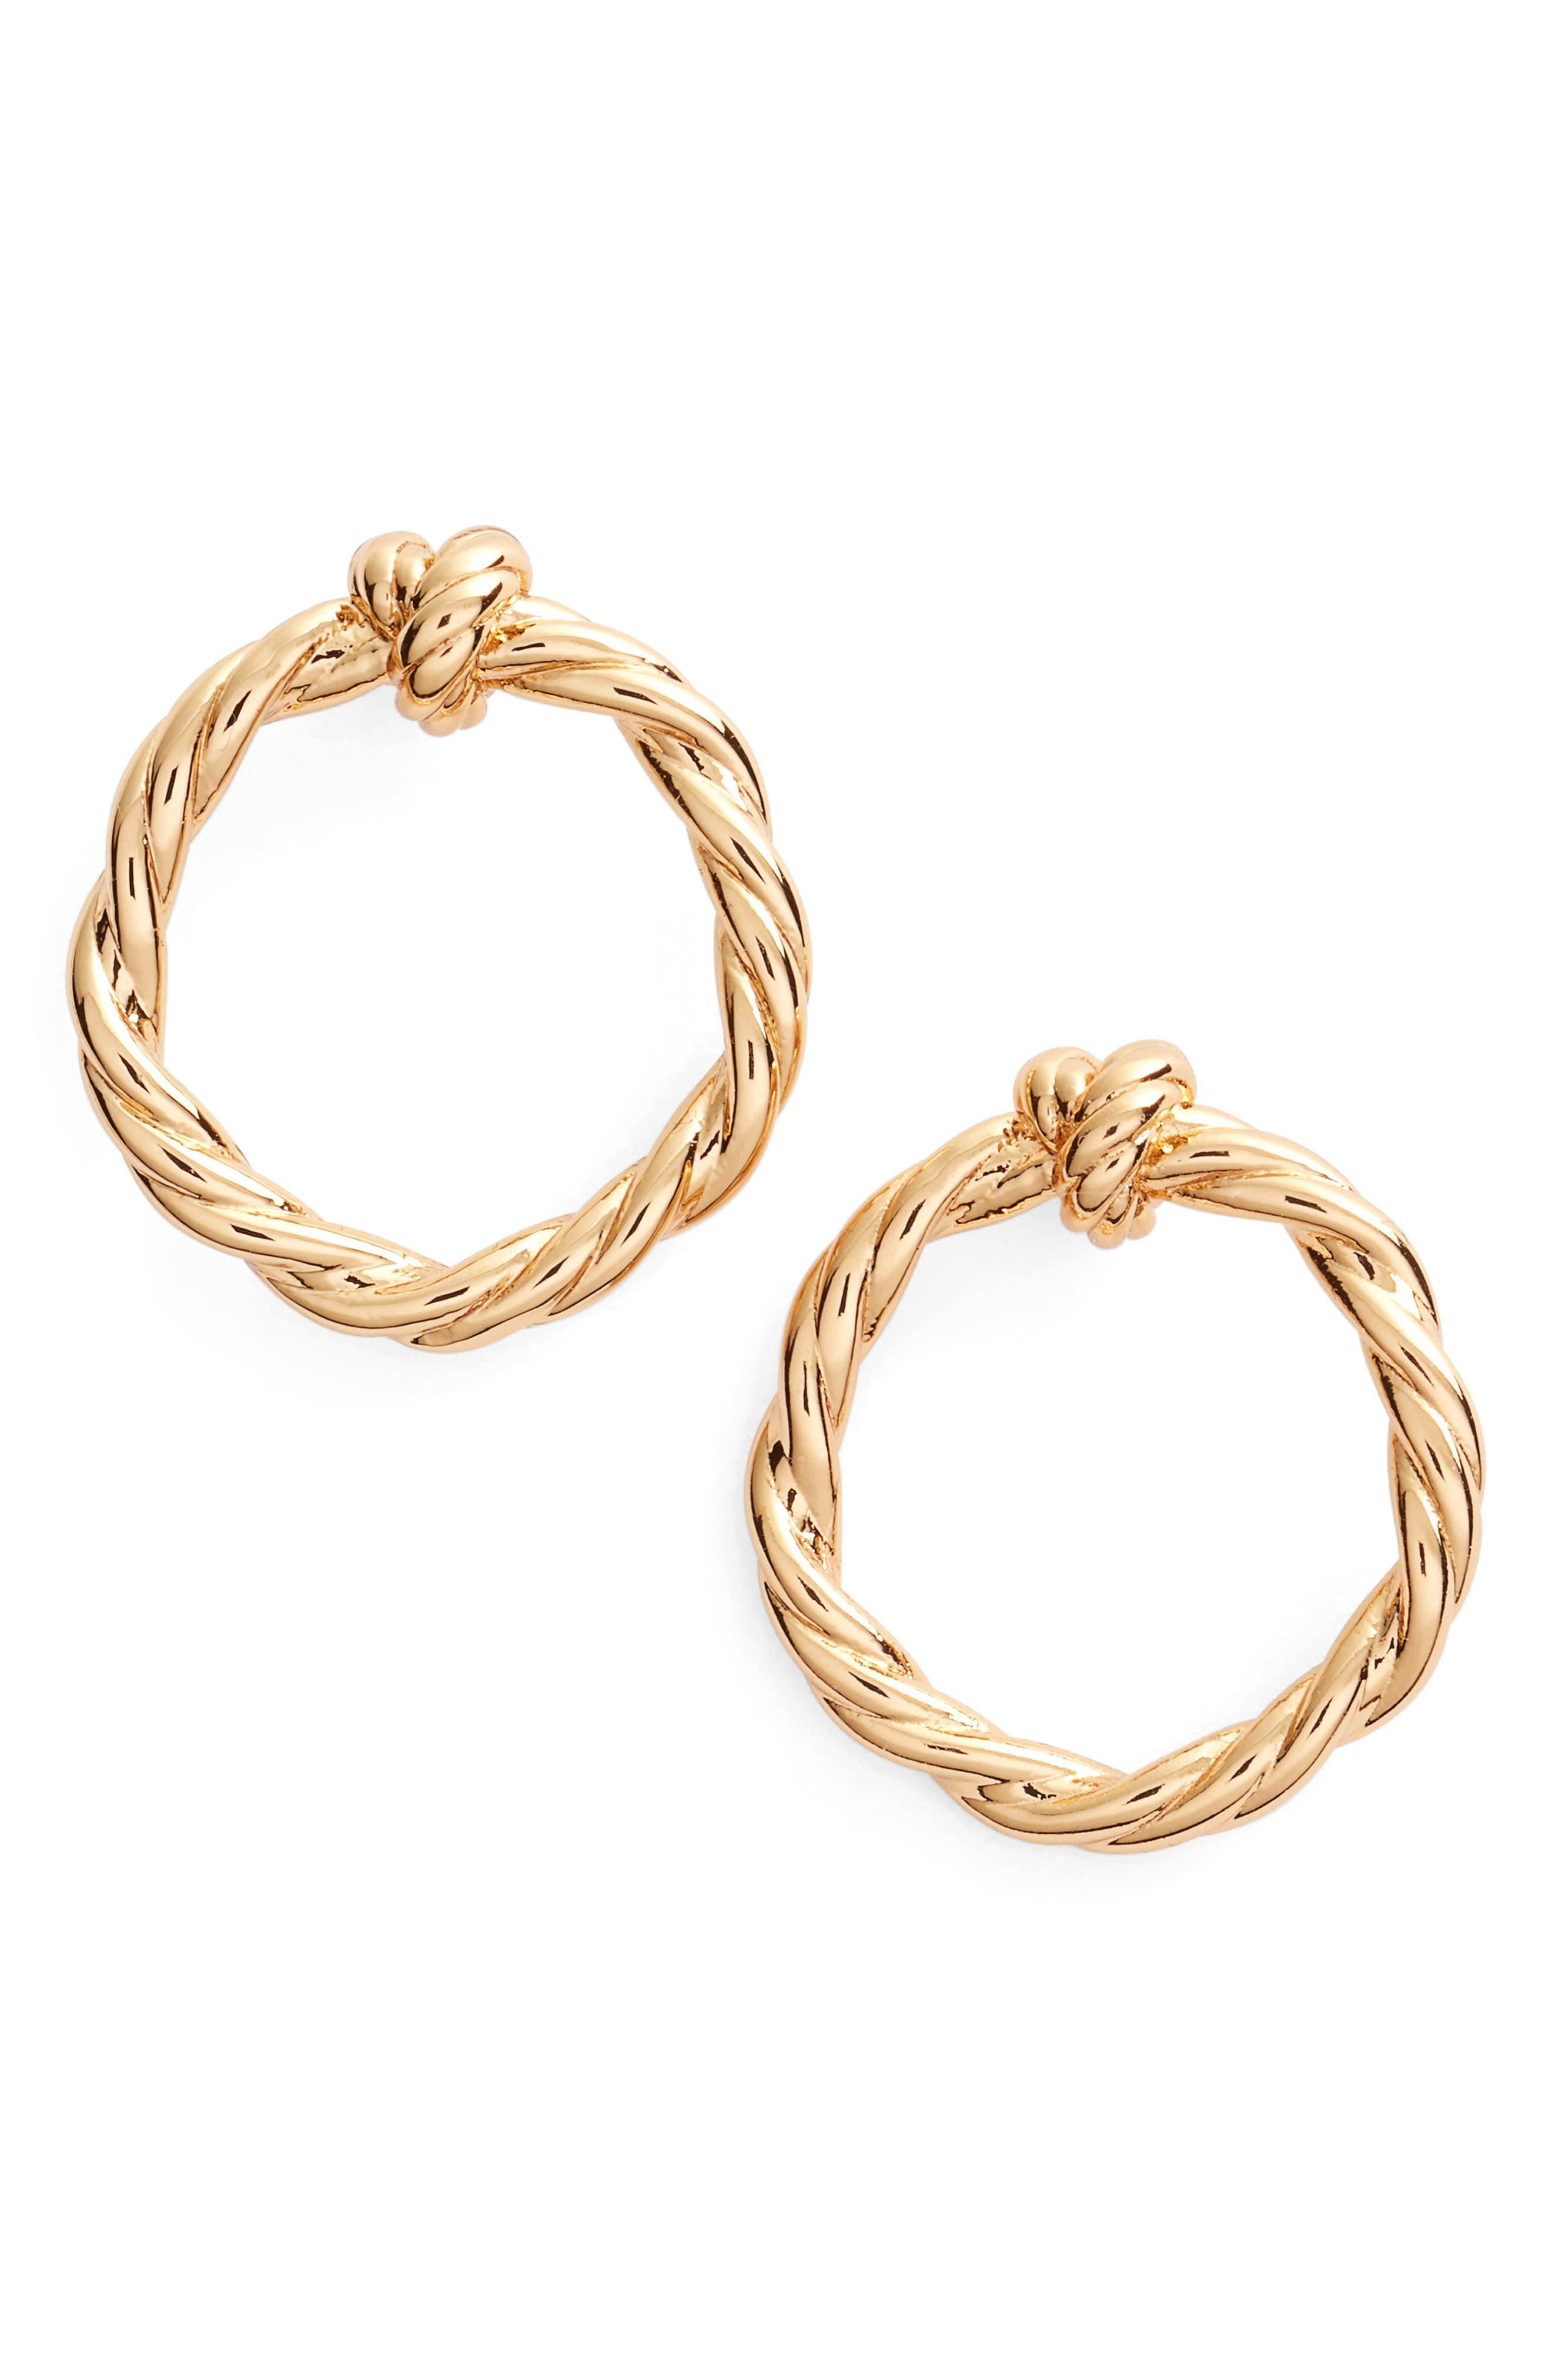 Main Image - Tory Burch Twisted Knot Stud Earrings